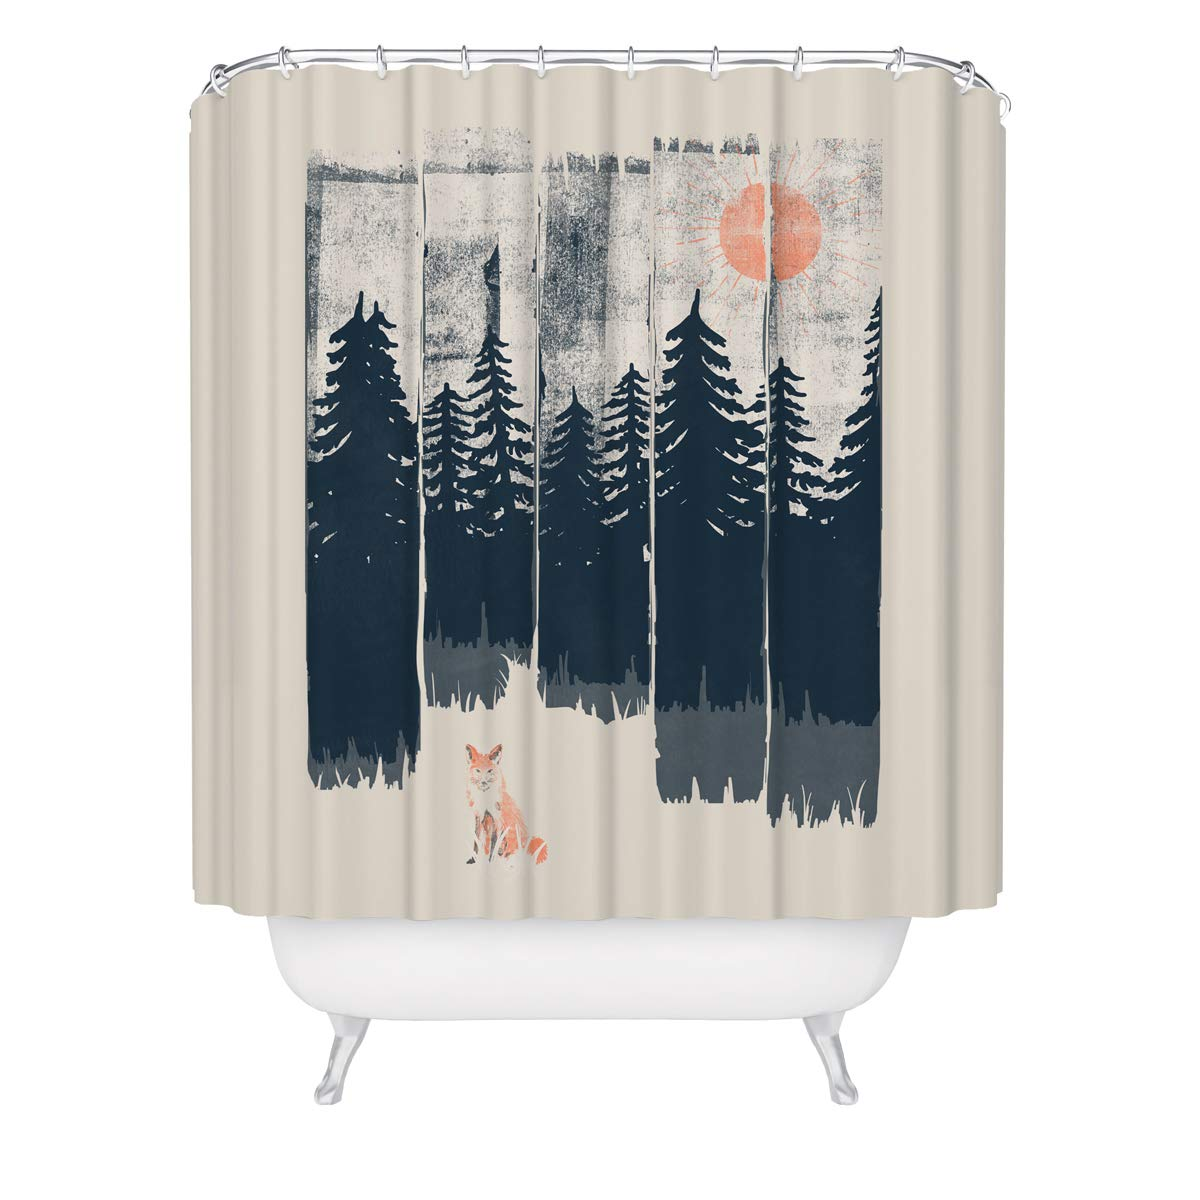 Wilderness Fox Shower Curtain - Outdoor Nature Forest Trees Woods Wildlife Cabin Bathroom Decor, Hiking Camping Woodland Inspiration Mold Resistant Fabric Curtain 71x 74